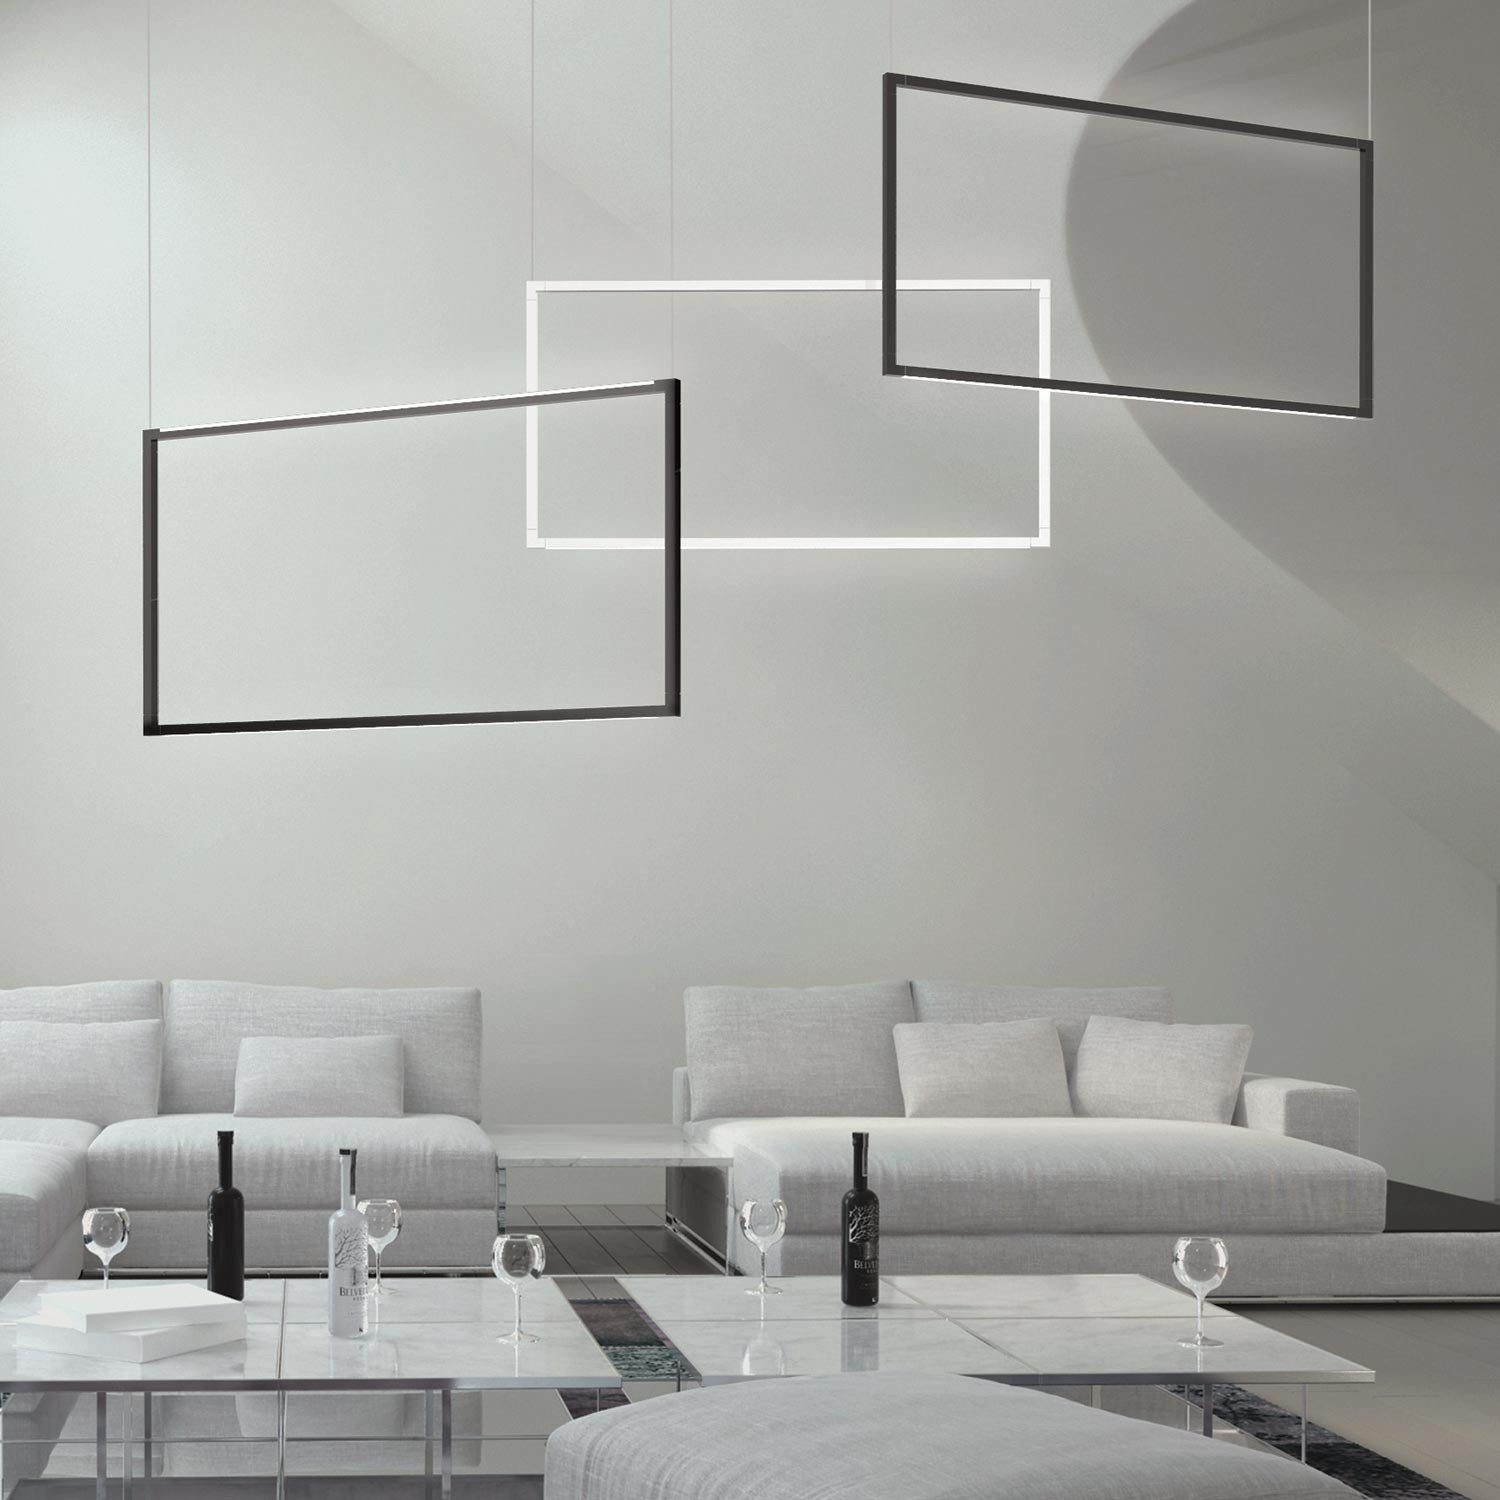 Nedhengt LED-armatur Spigolo fra Nemo Lighting